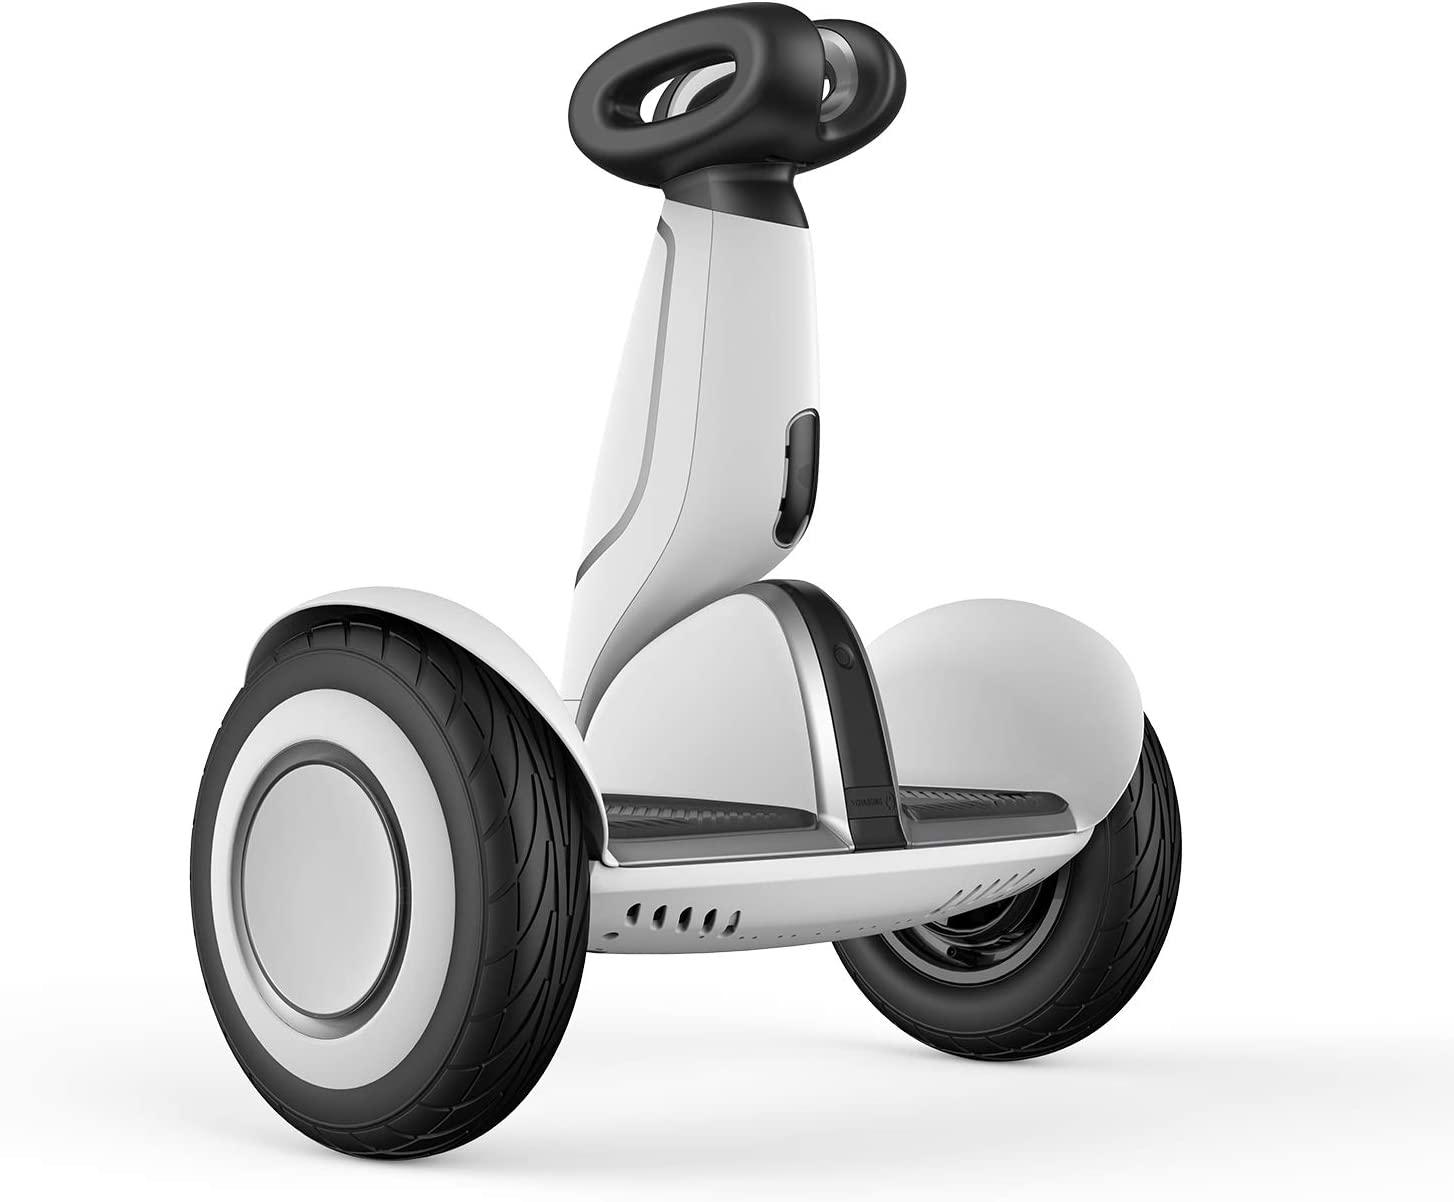 Segway Ninebot S-Plus Smart Self-Balancing Electric Scooter with Intelligent Lighting and Battery System, Remote Control and Auto-Following Mode, White